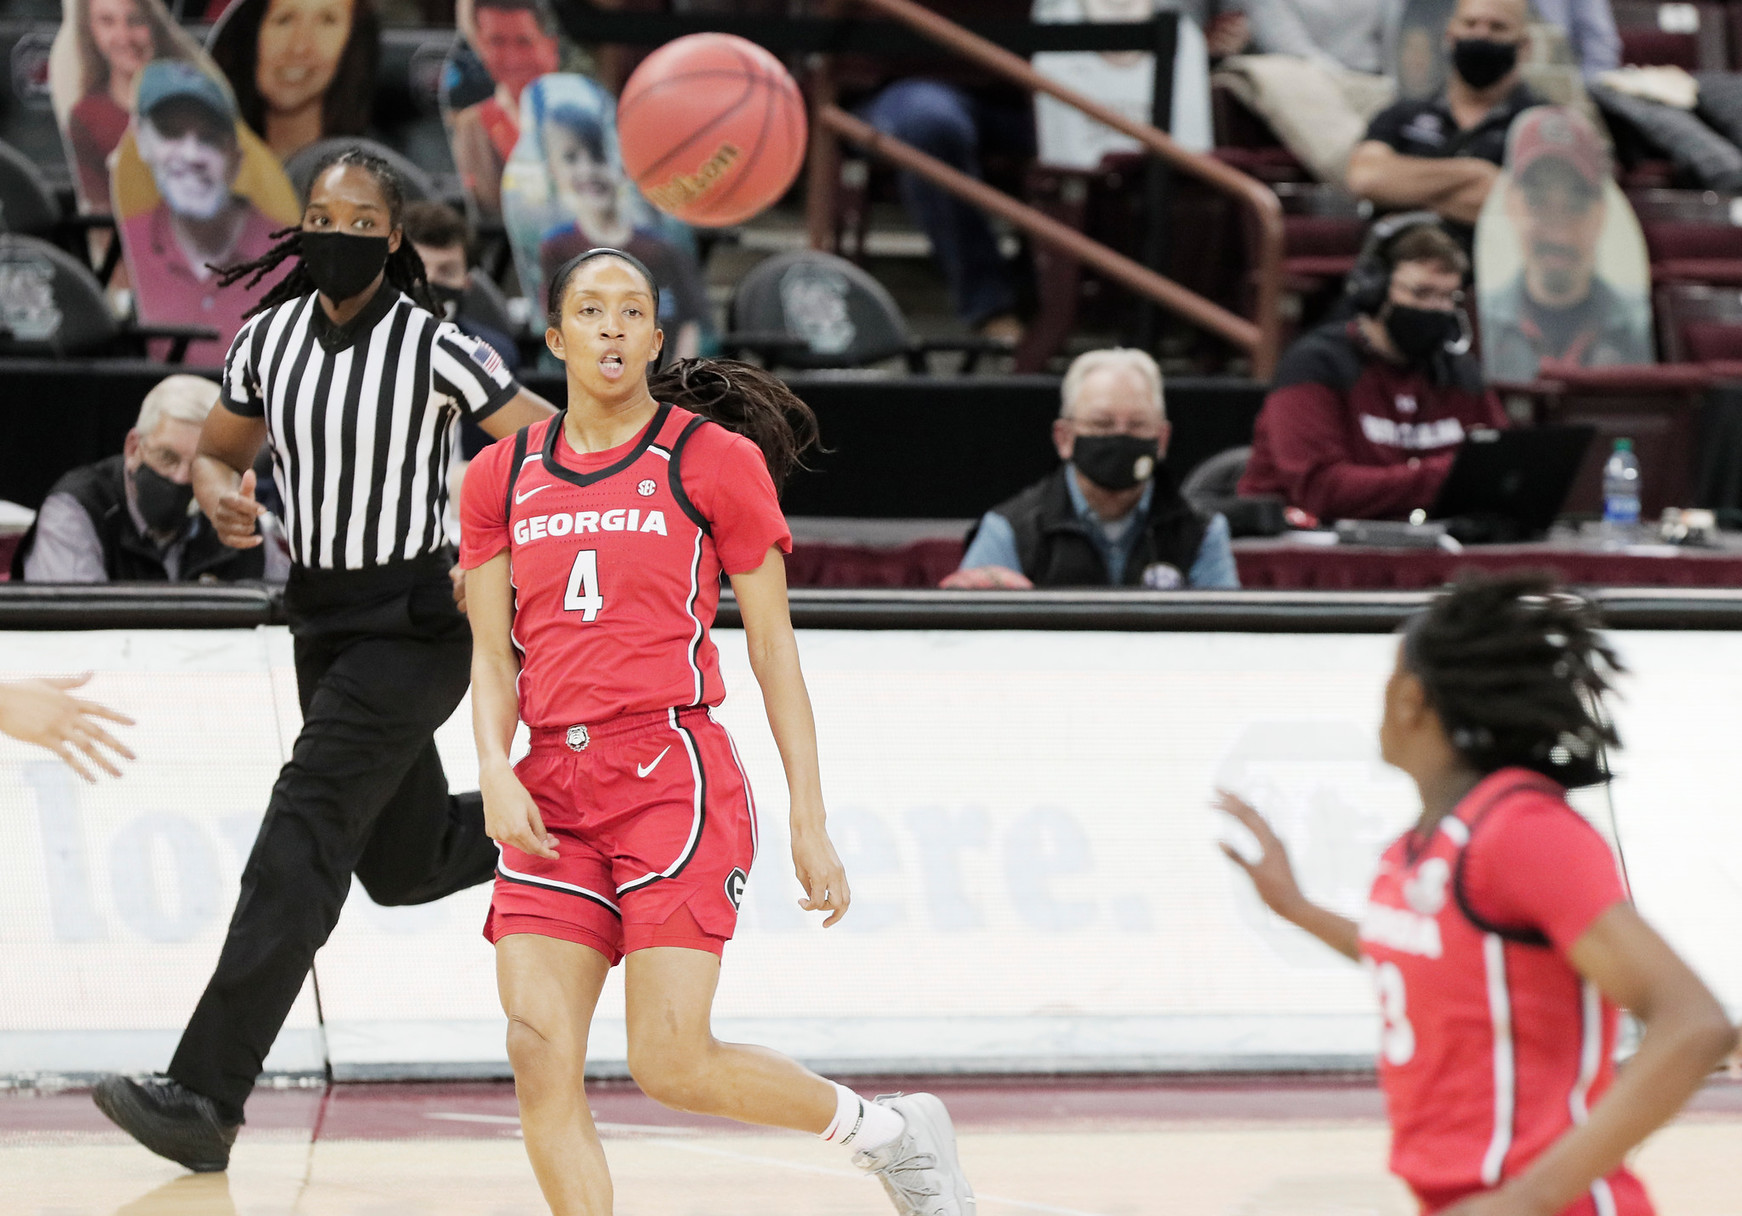 Georgia Lady Bulldogs guard Mikayla Coombs (4) passes the ball at Colonial Life Arena on Thursday, January 21, 2021.